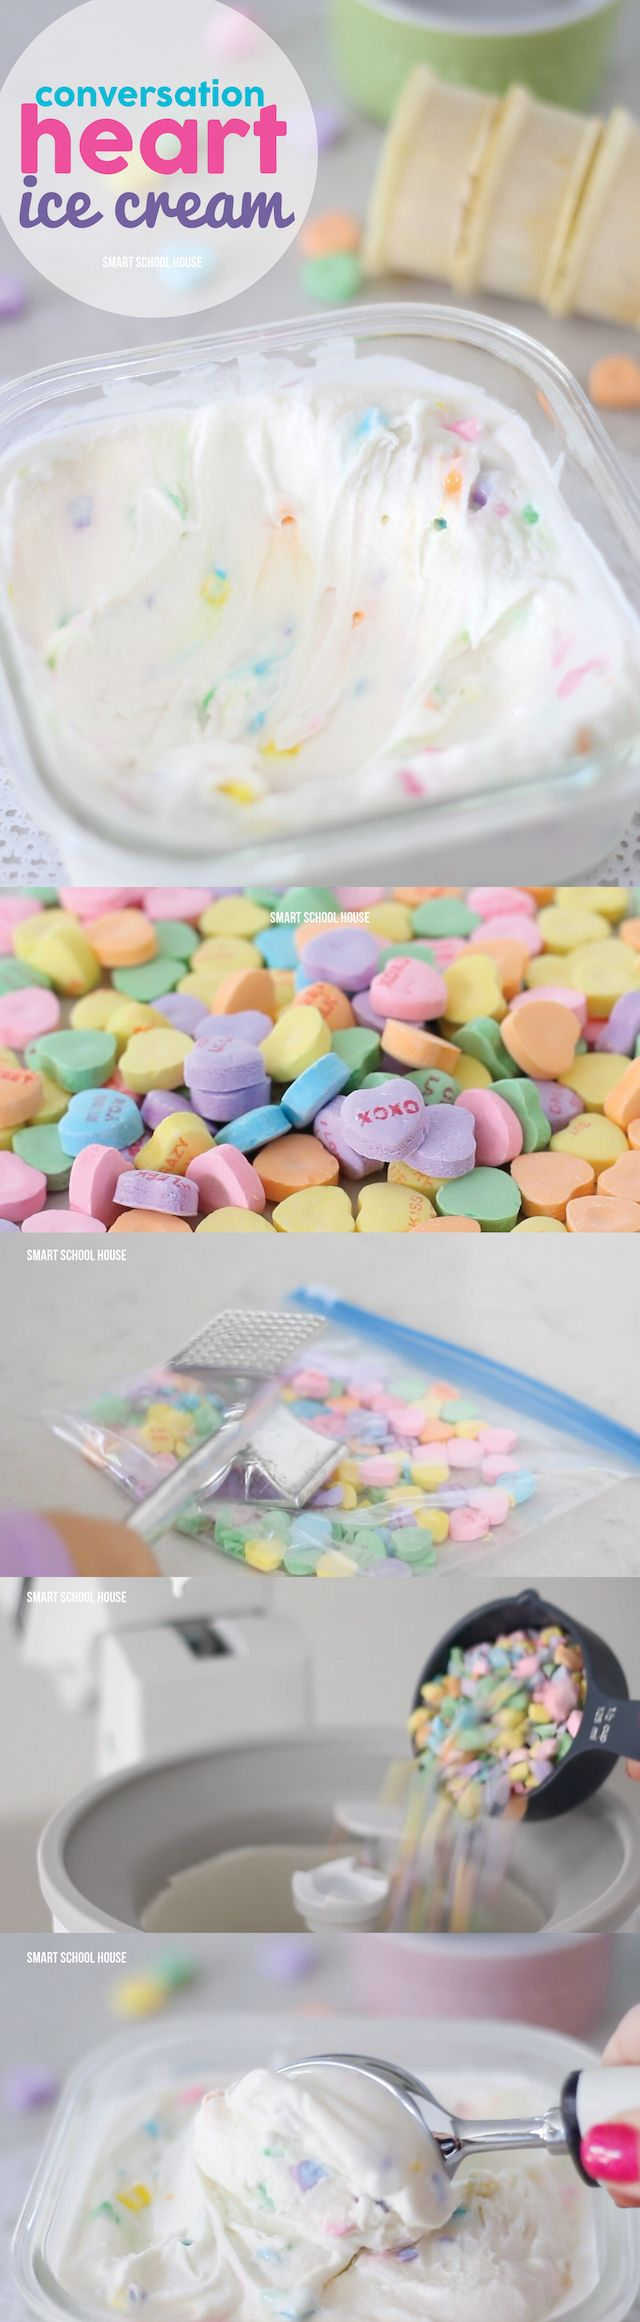 "Conversation Heart Ice Cream for Valentine's Day! So easy and you don't have to have an ice cream maker. My daughter said, ""This is the best ice cream EVERRRR!"""